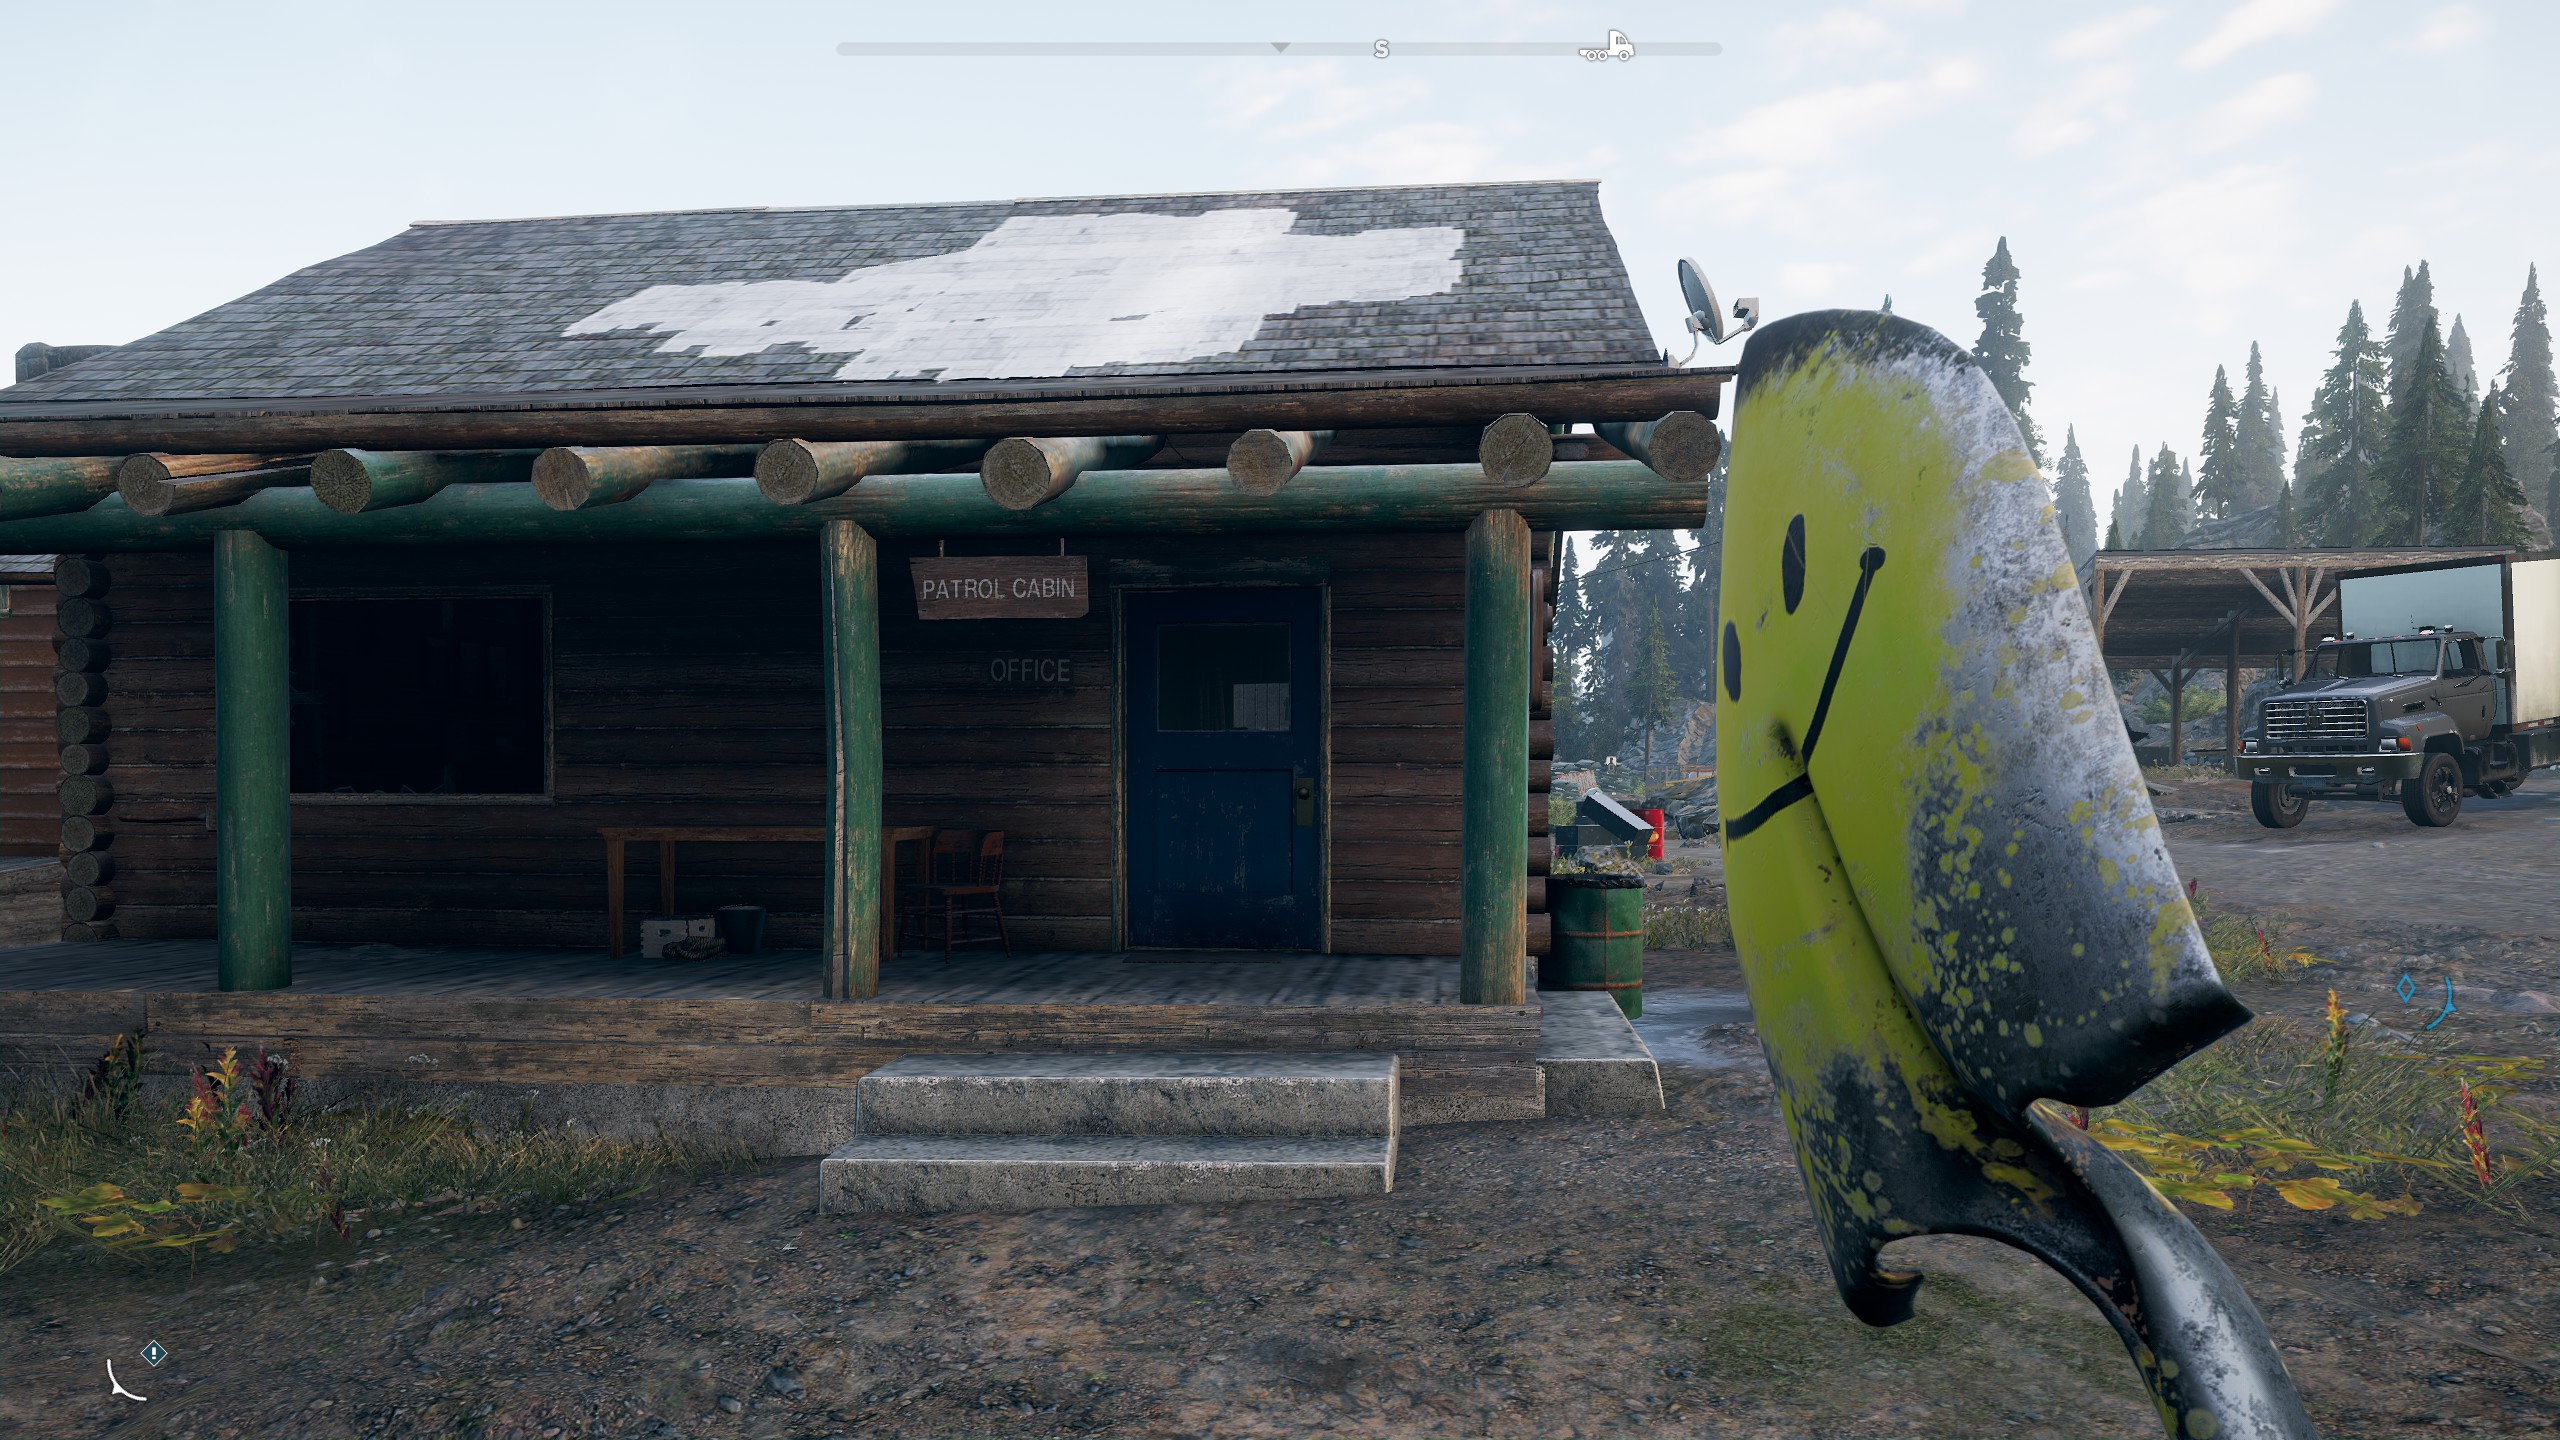 Far Cry 5 Johns Region Pictures To Pin On Pinterest: Far Cry 5 Silver Bar Locations And Maps